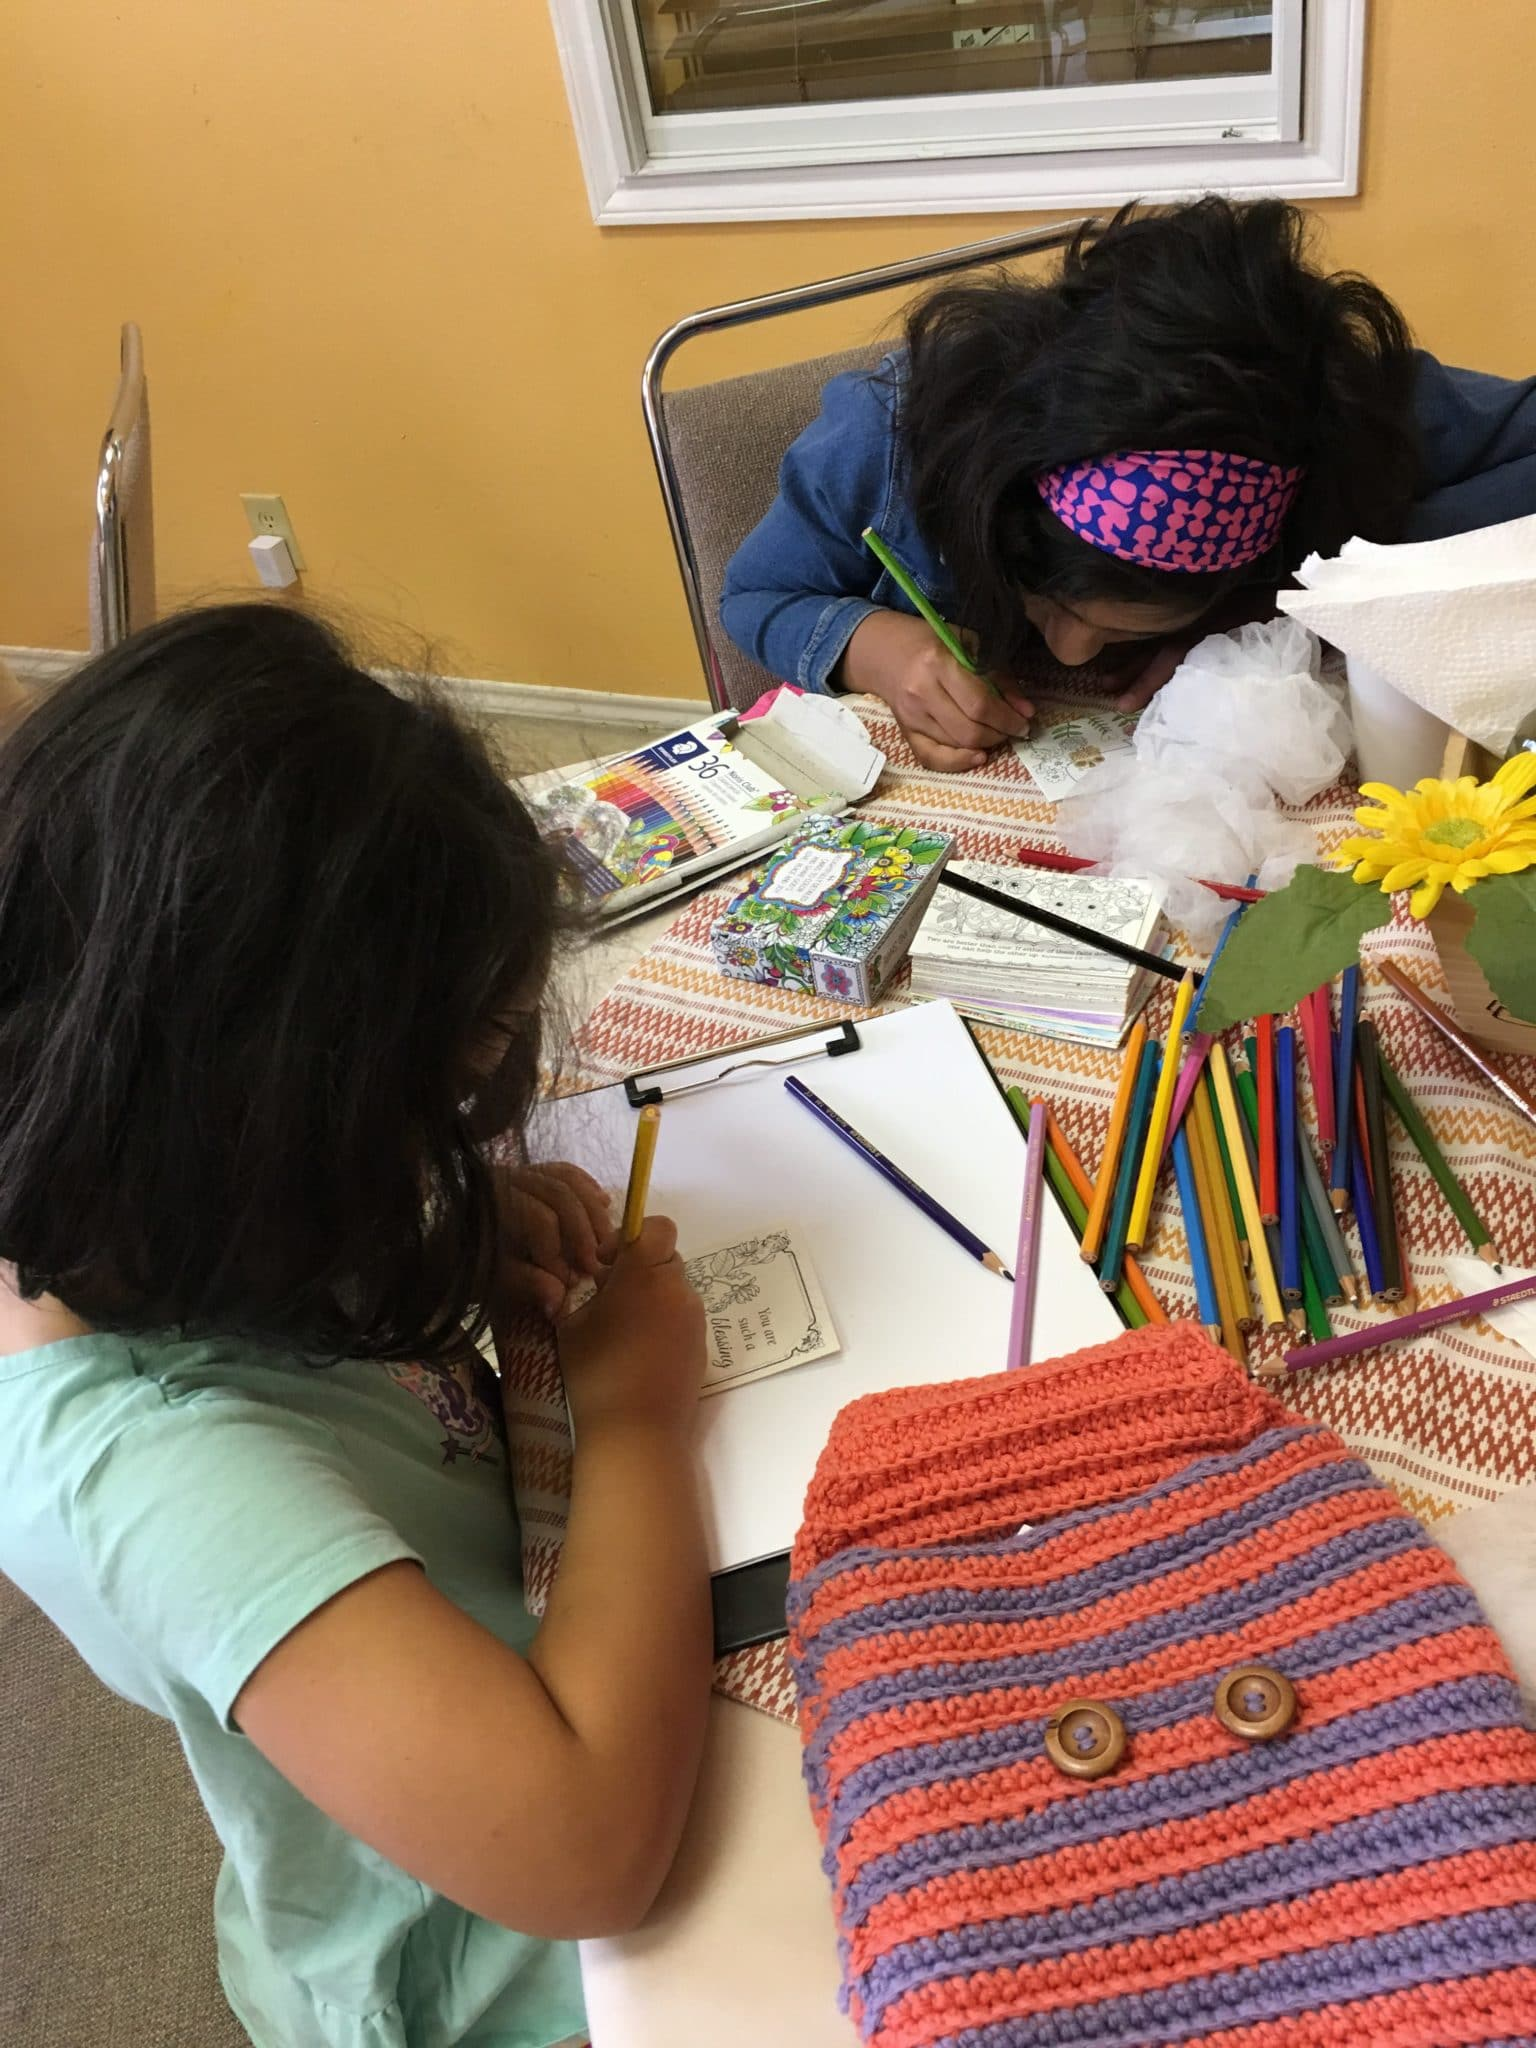 Pix if girls writing letters to women's prison ministry.